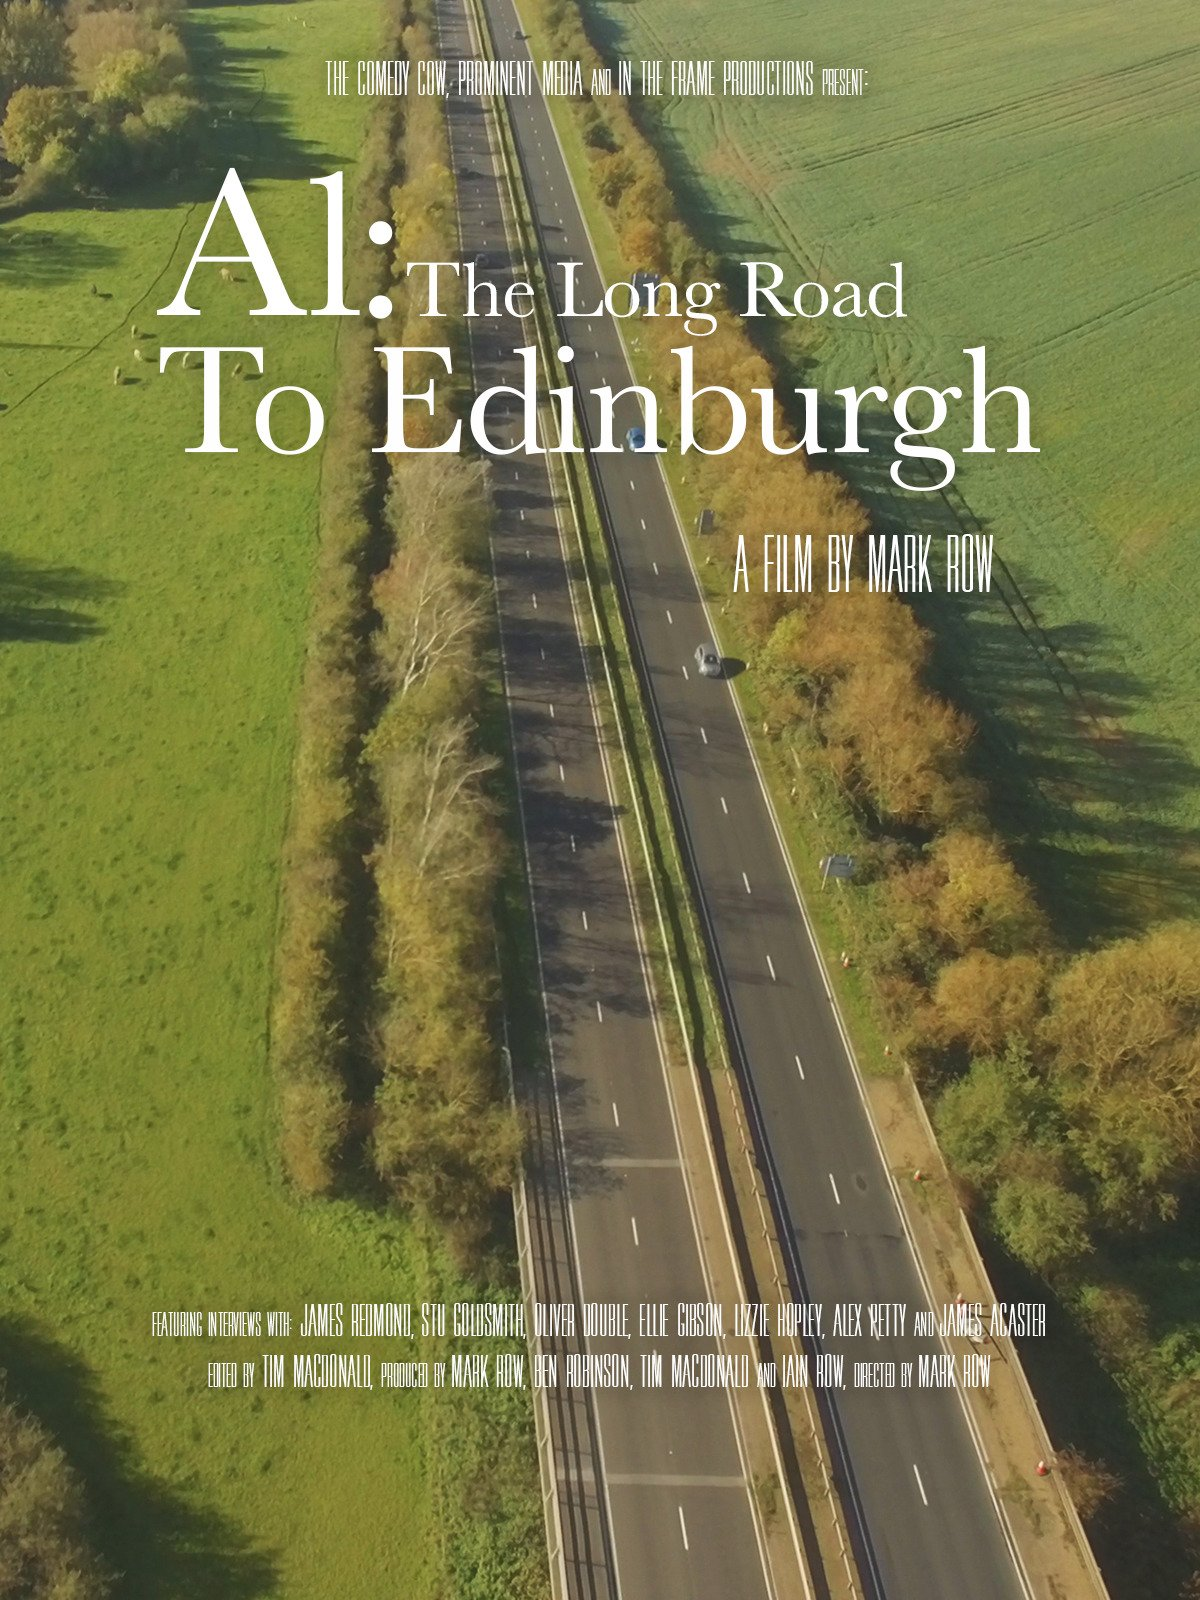 A1: The Long Road to Edinburgh